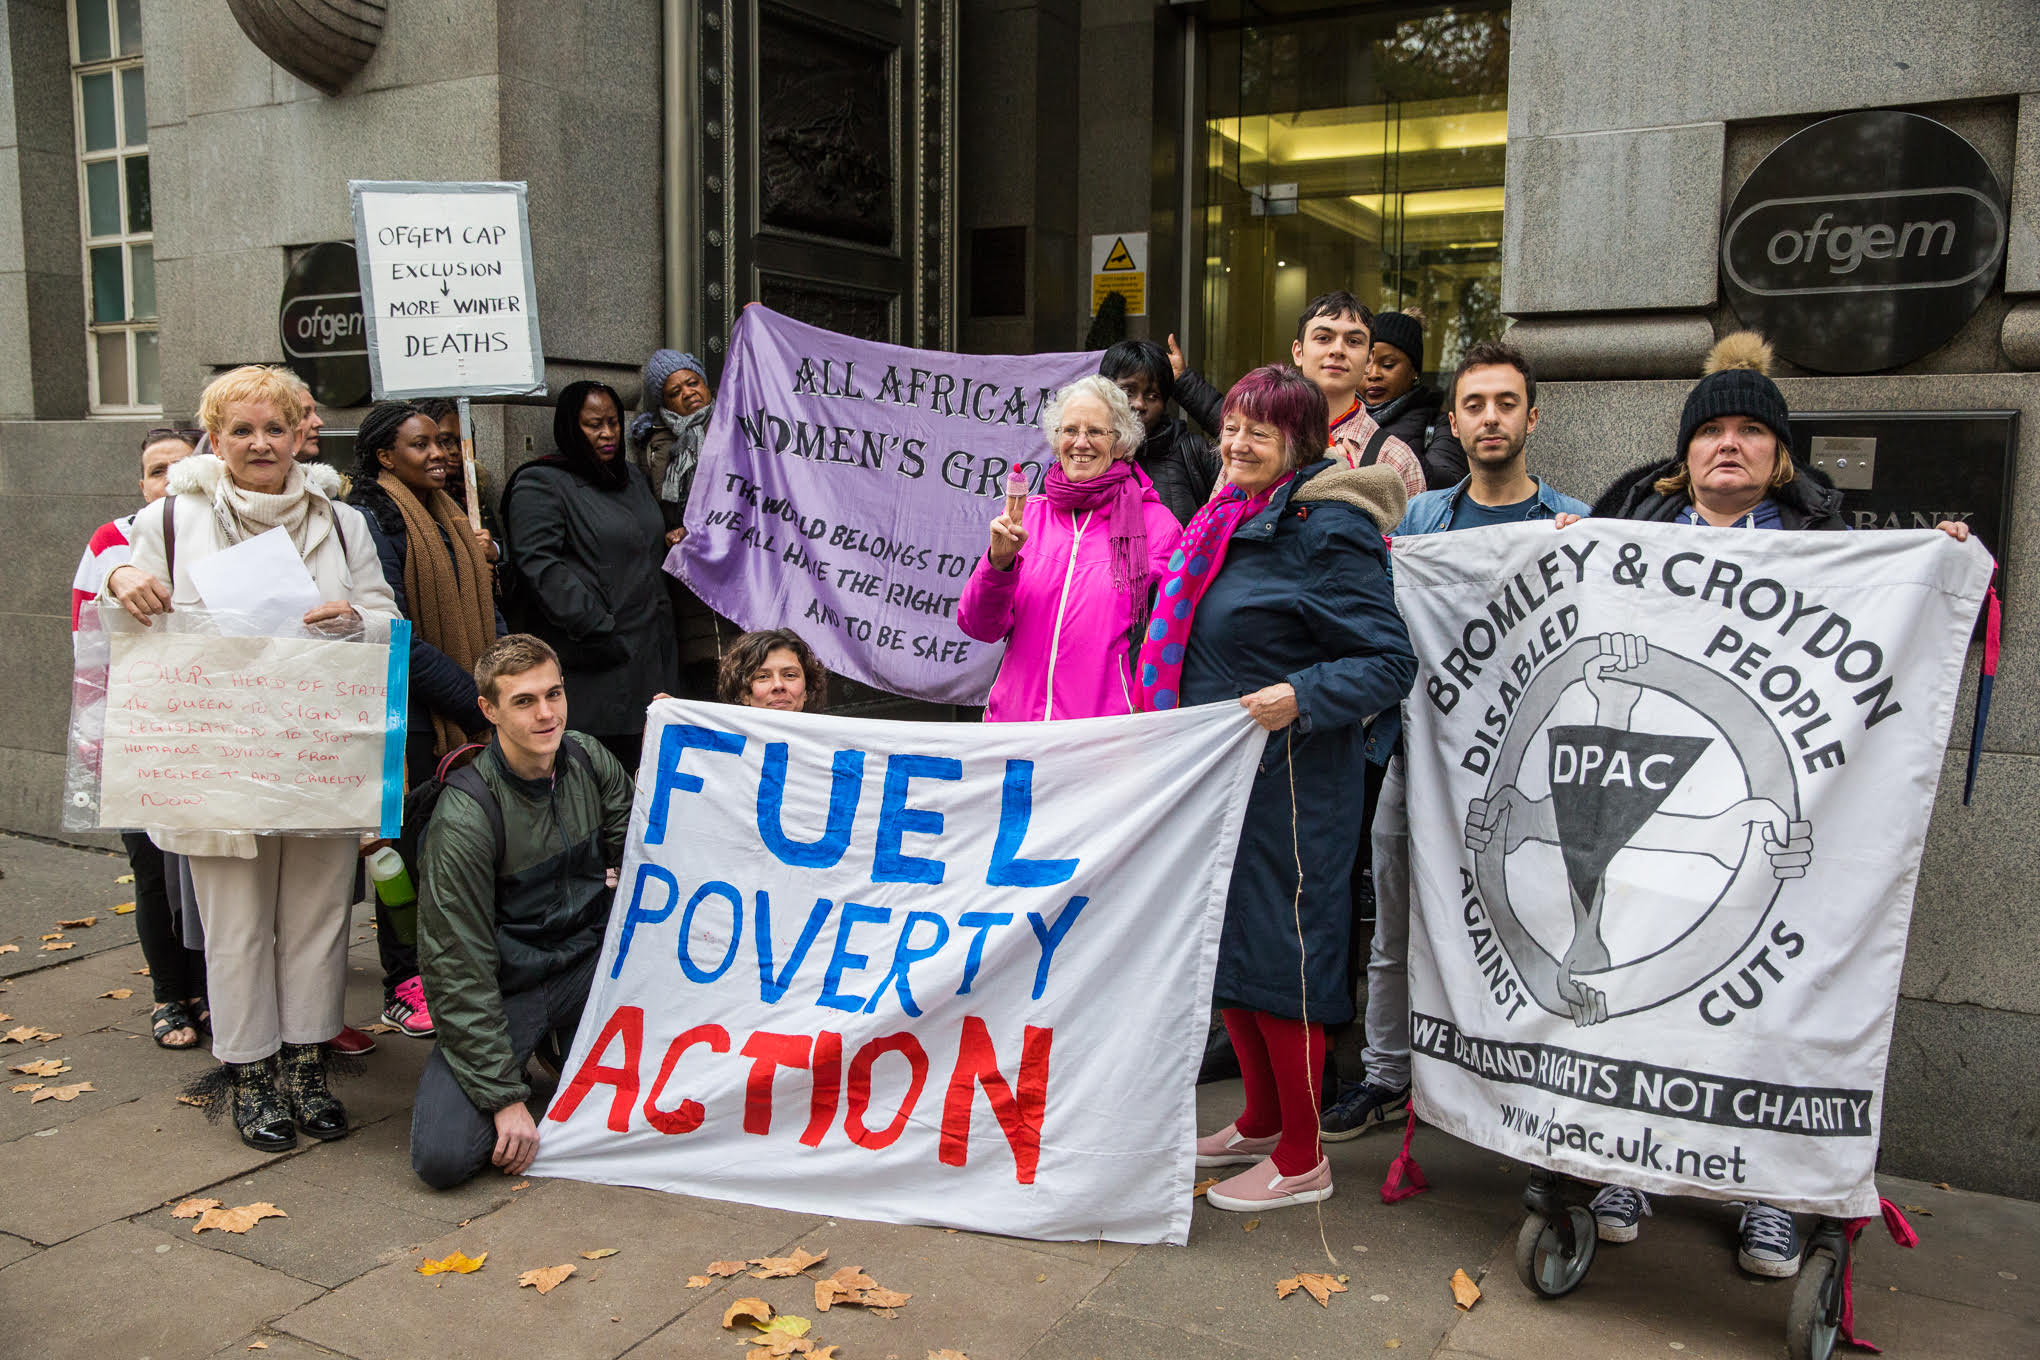 Fuel Poverty Action